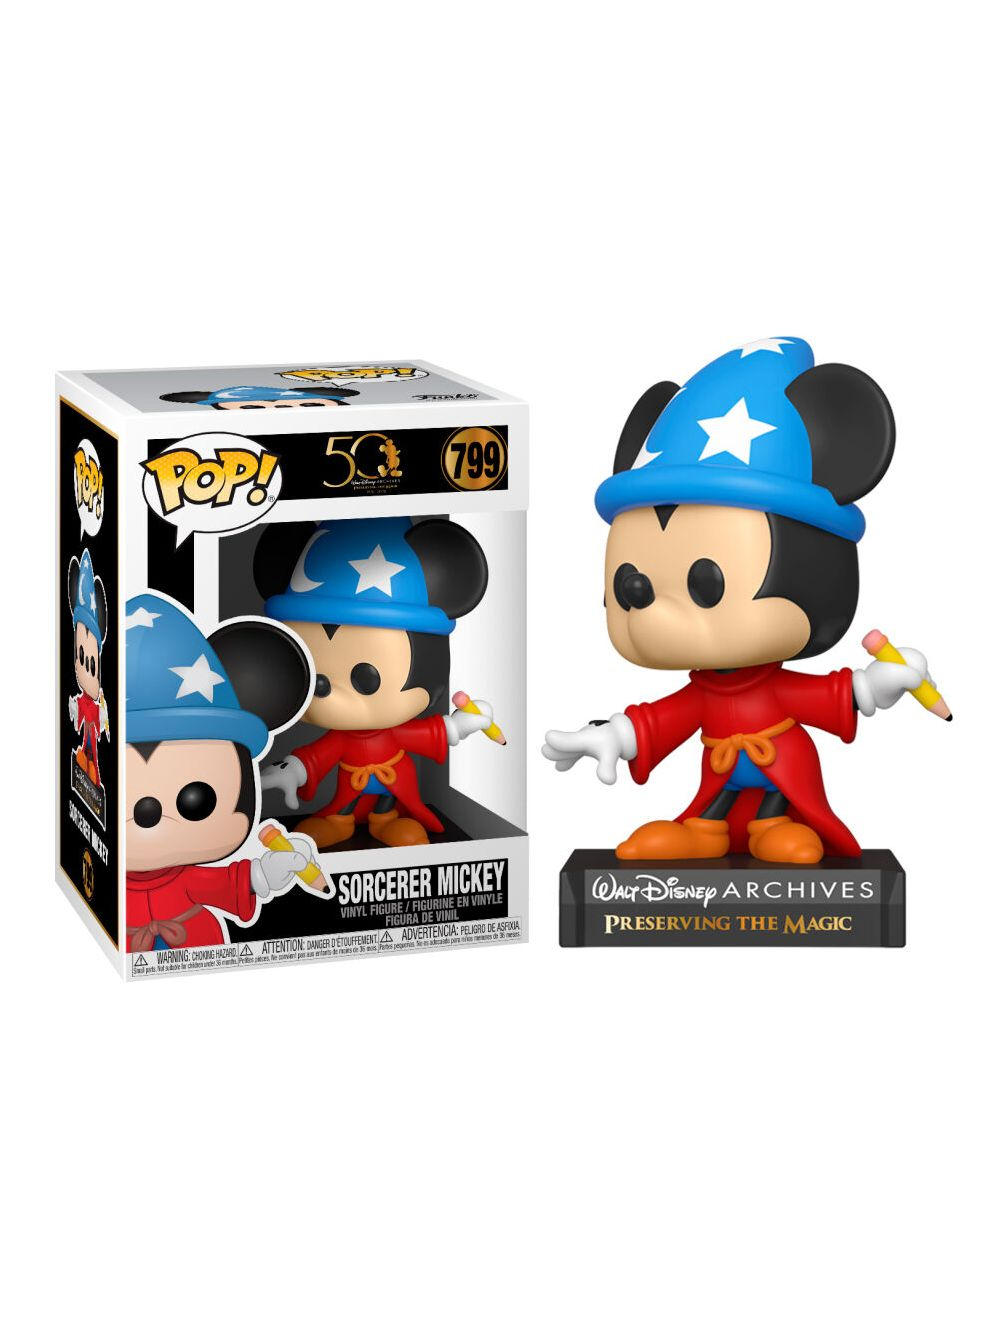 Funko POP! Disney Archives - Sorcerer Mickey Vinyl Figura 10cm